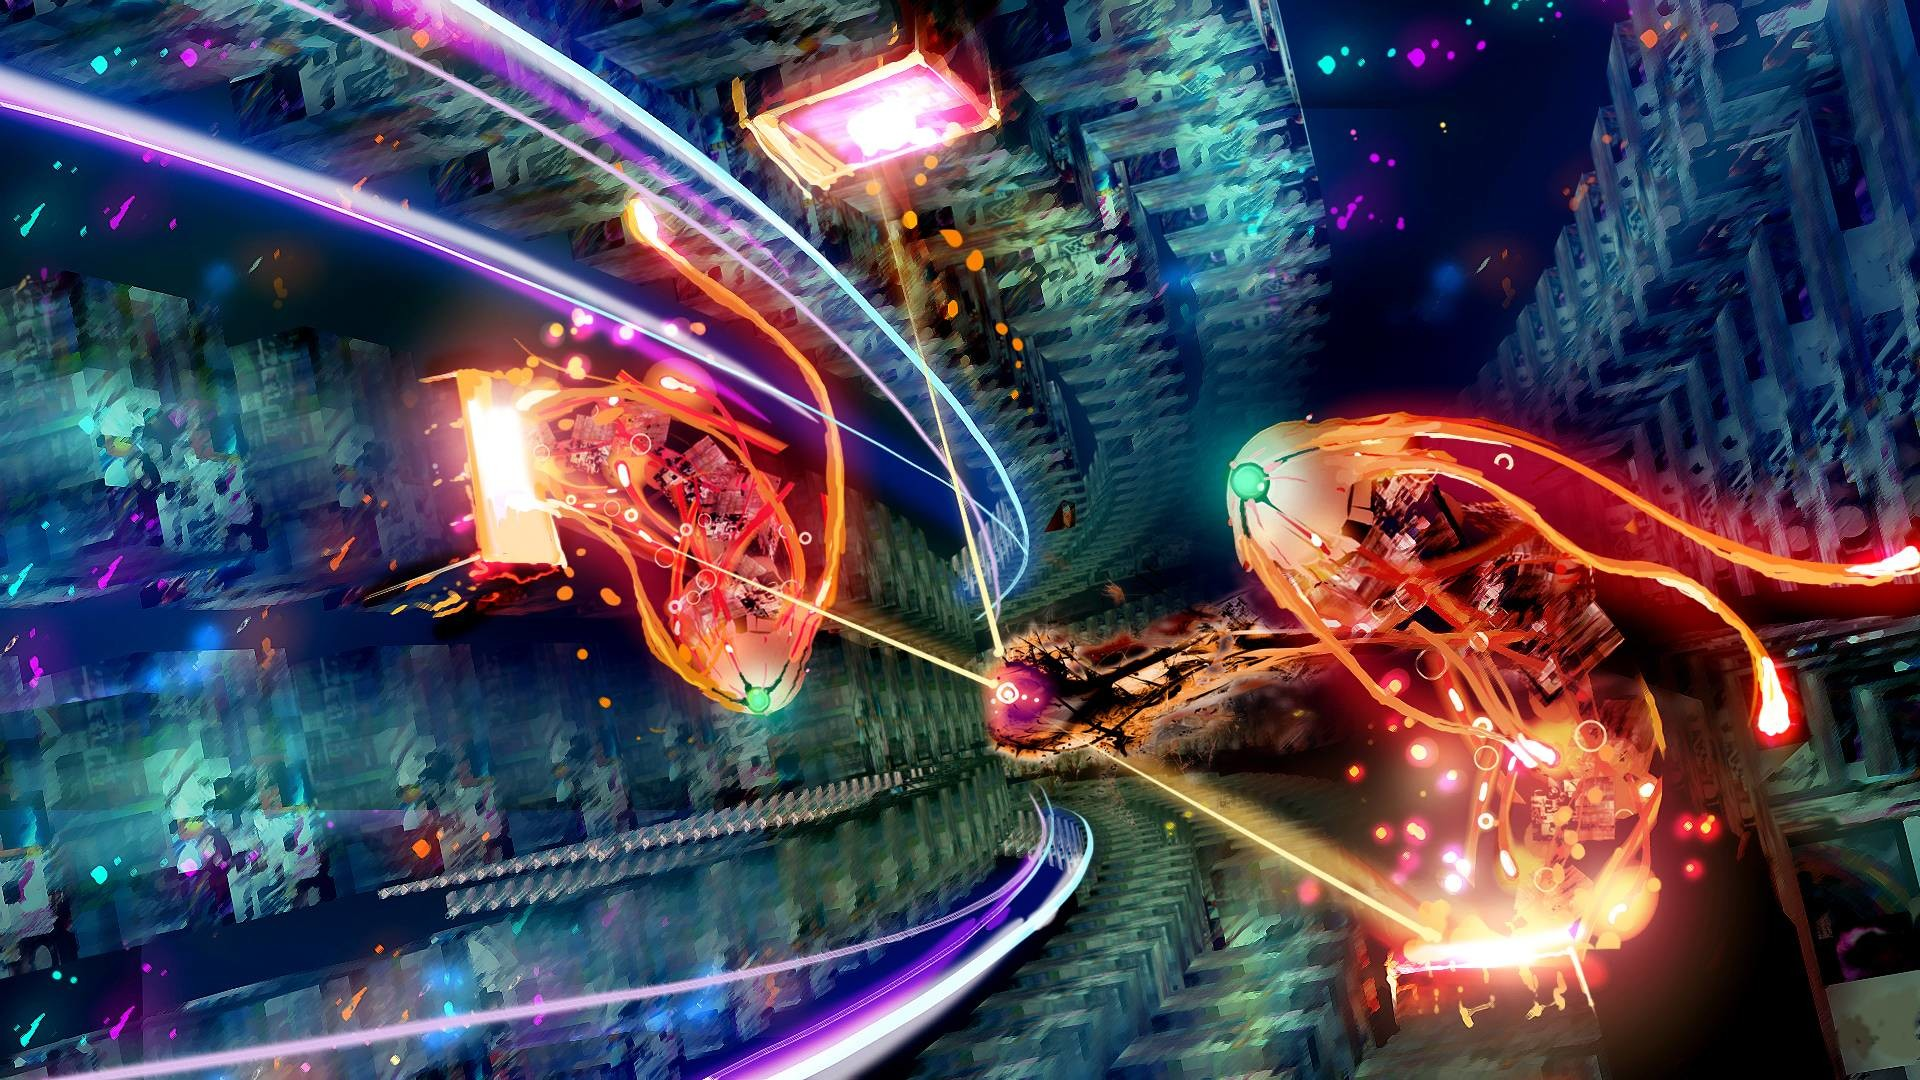 Trippy Space Backgrounds Wallpaper 1920×1080 Trippy Space Backgrounds (43  Wallpapers) | Adorable